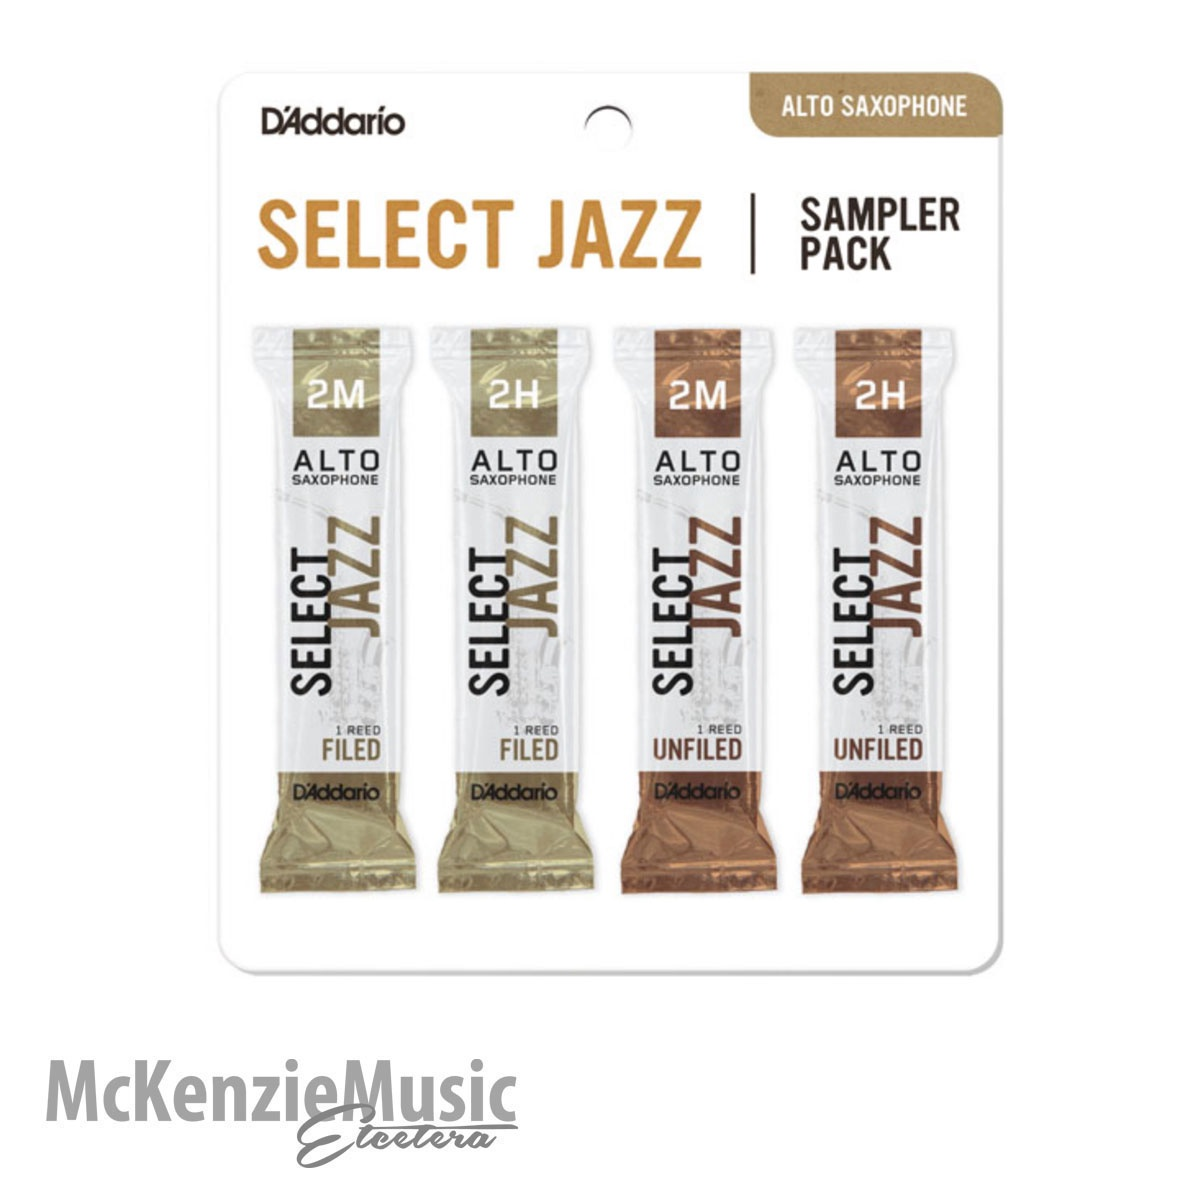 D'Addario Select Jazz Alto Sax Reed Sample Pack Size 2